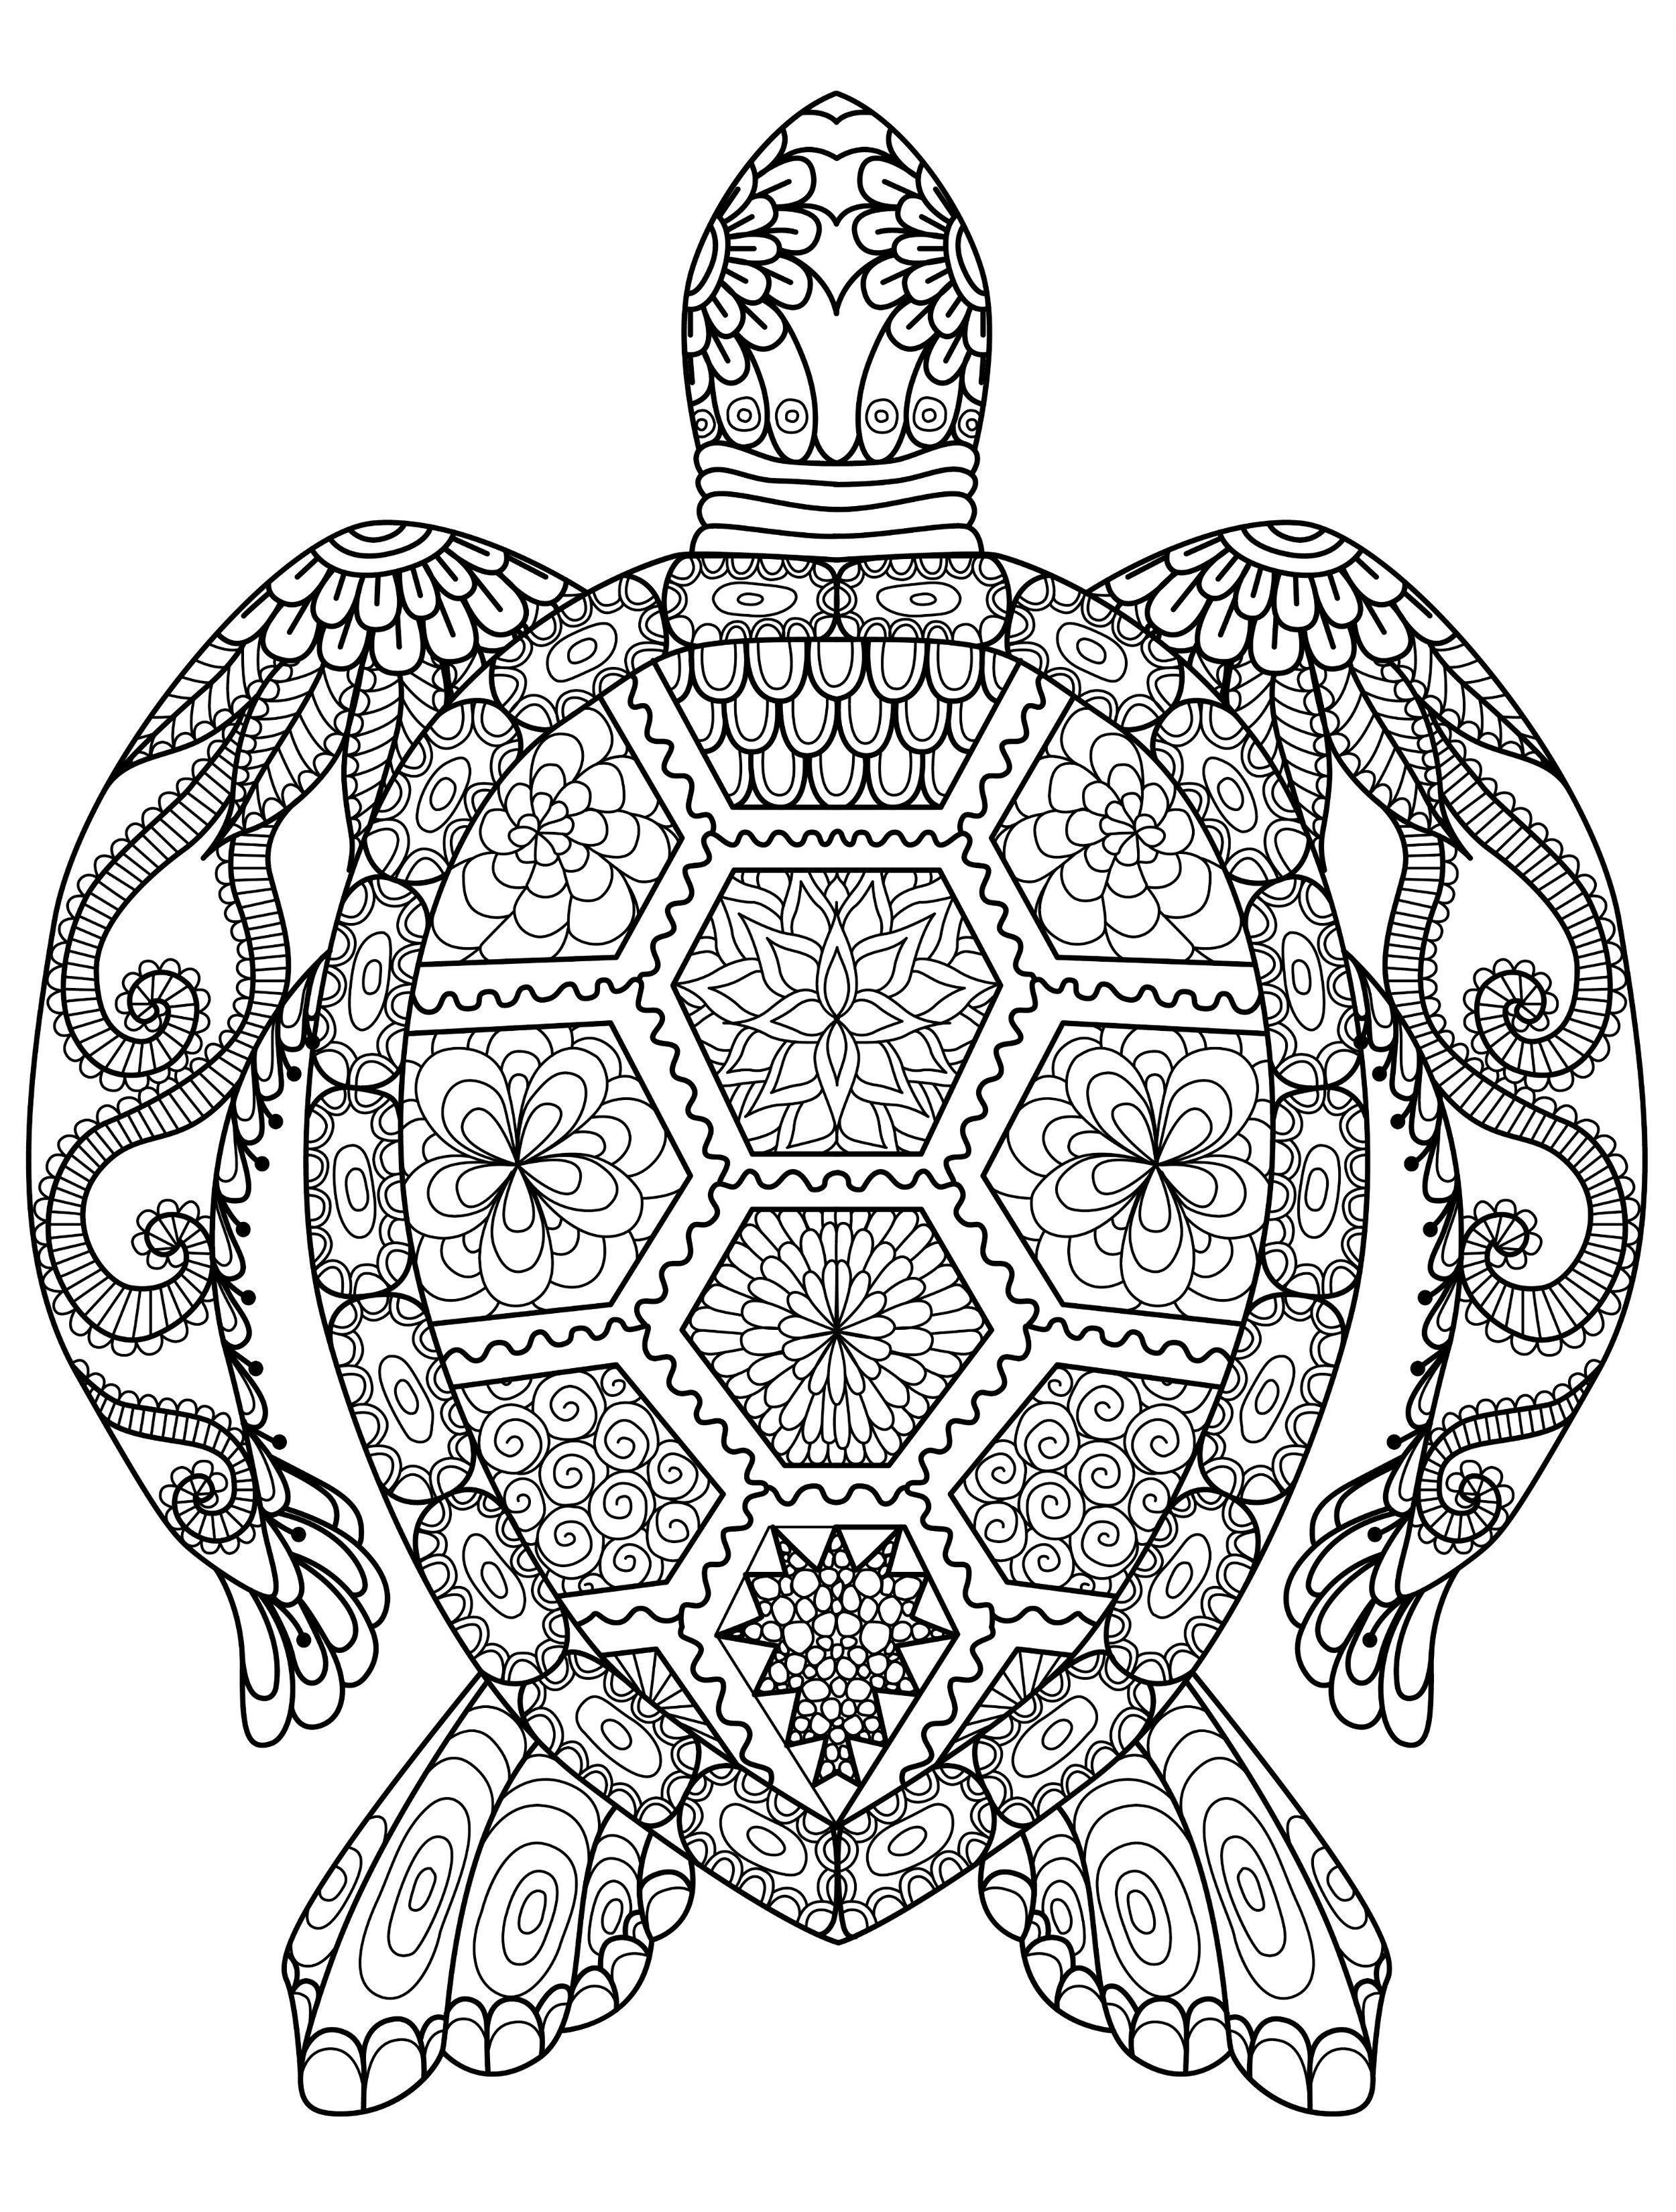 Animal Mandala Coloring Pages | Turtle coloring pages ... | mandala coloring pages for adults animals